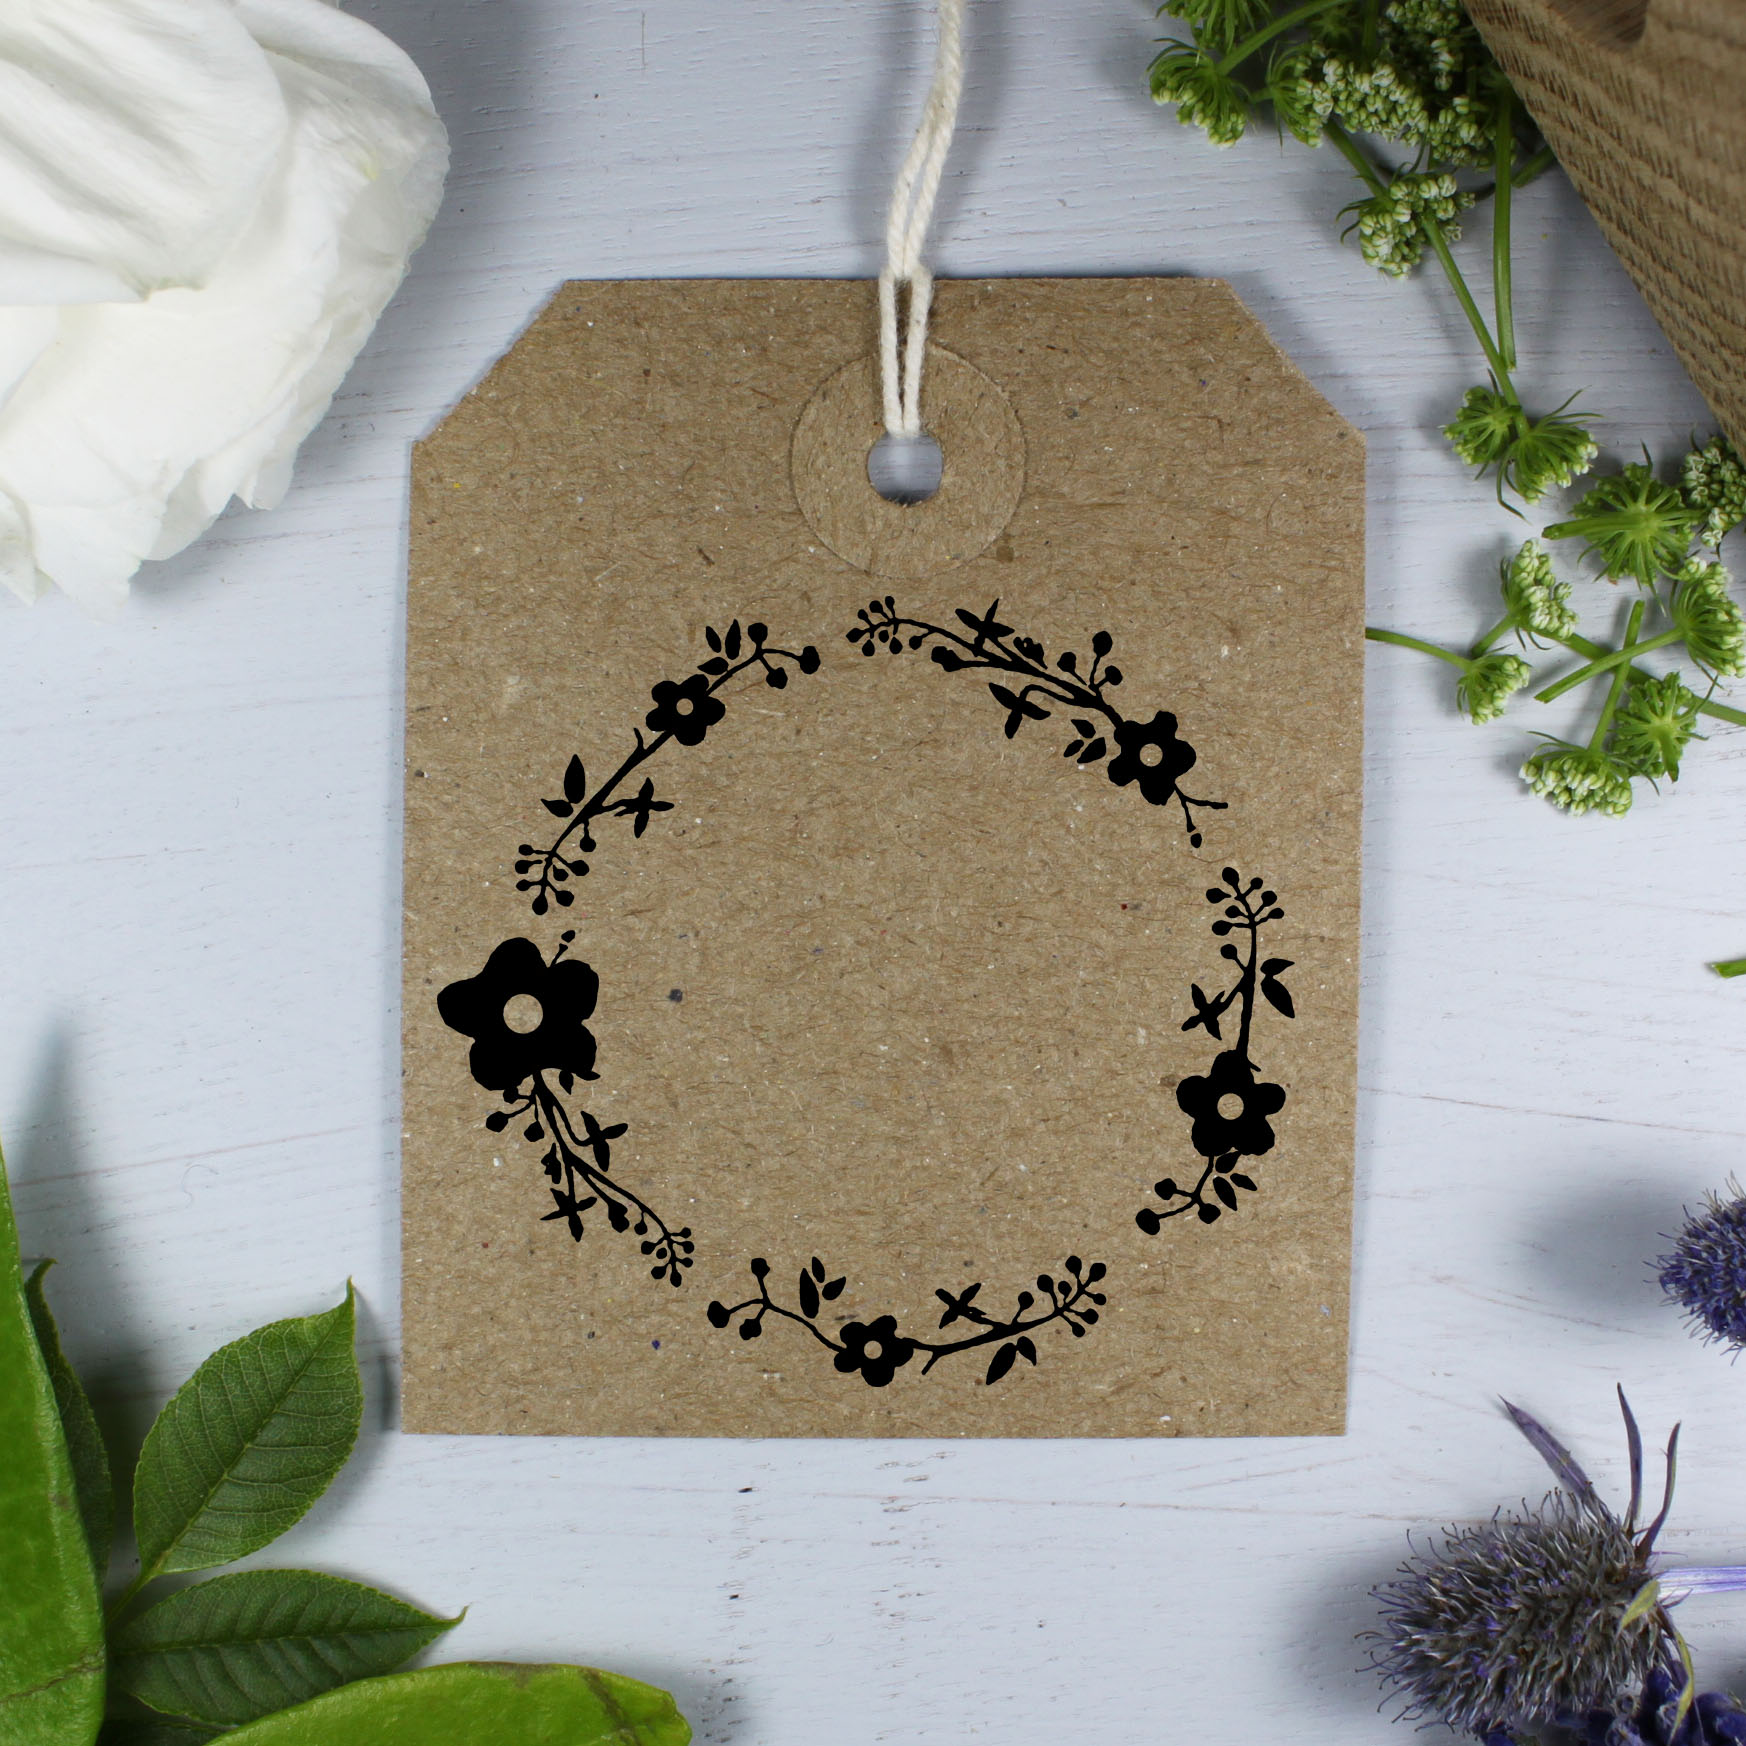 Motif stamp Leaf wreath  stamp gift pendant flower wreath  wooden stamp with floral wreath